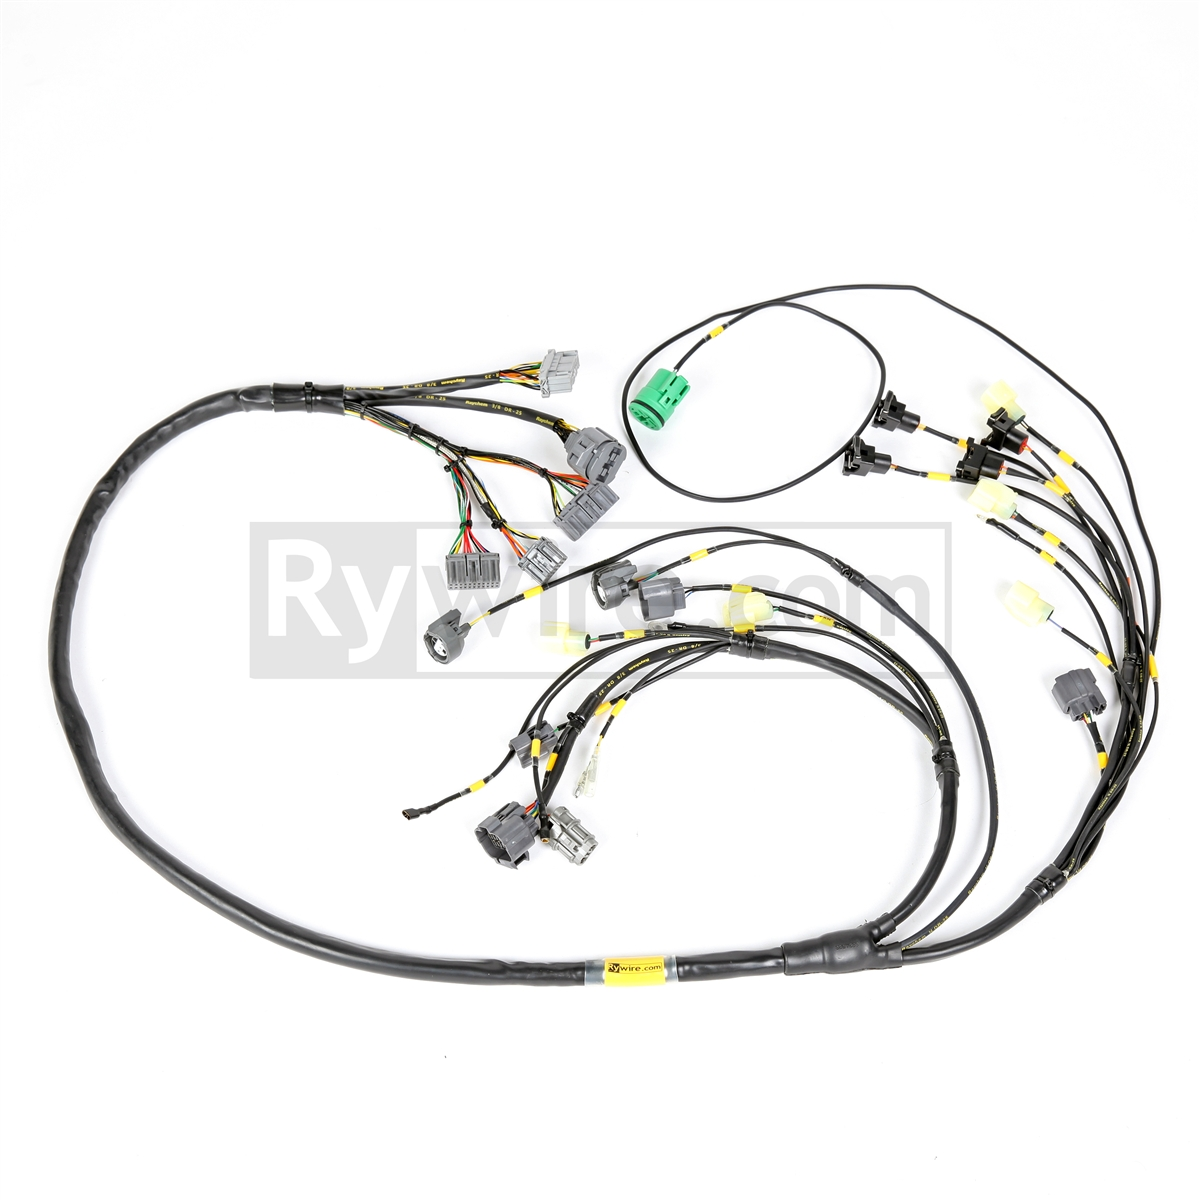 H1 Milspec 2?1402582650 rywire com mil spec f series (f20b) & h series (h22) harness  at money-cpm.com